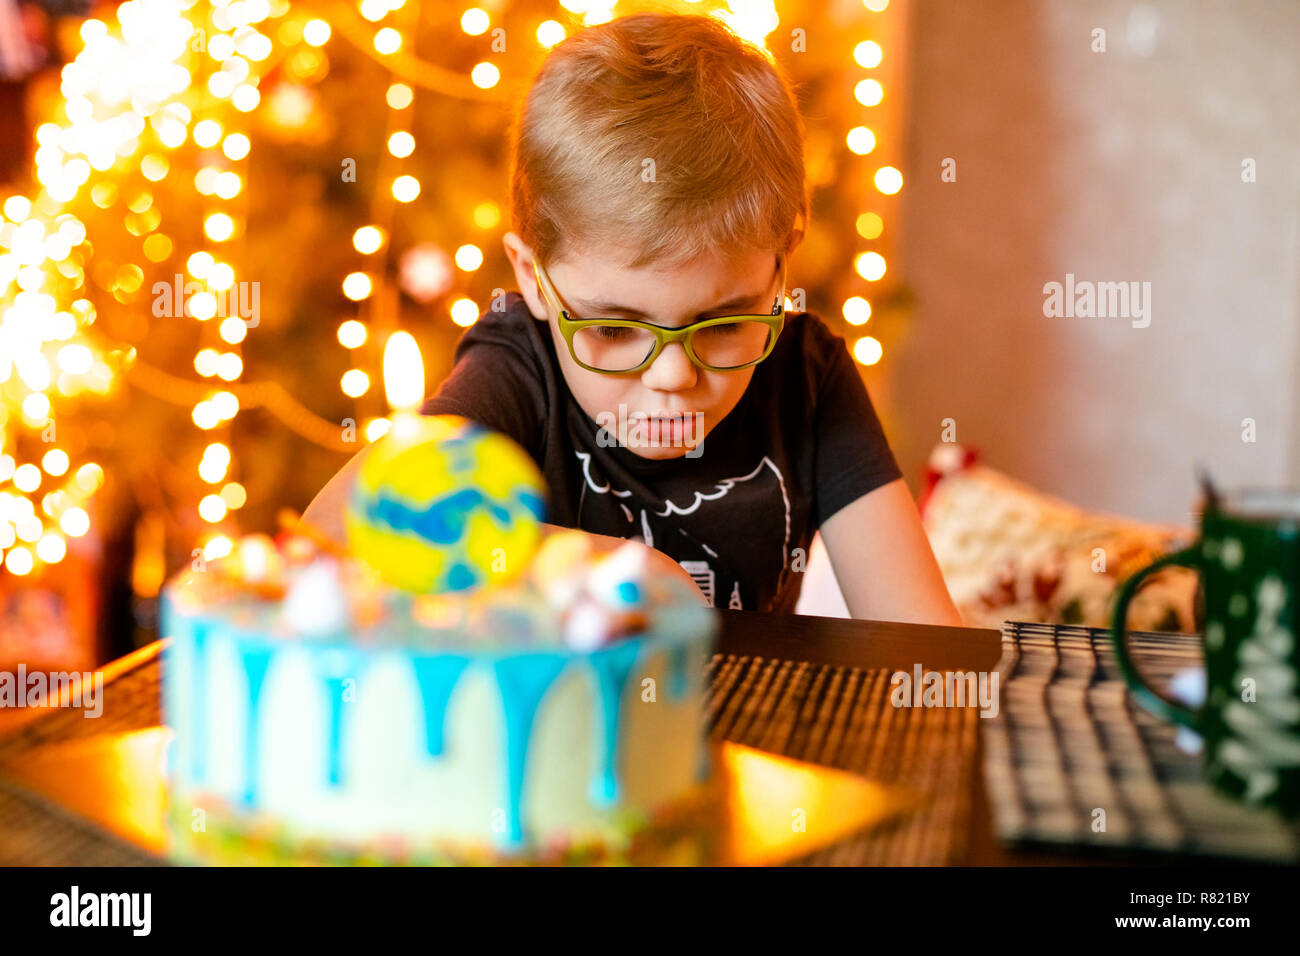 Beautiful Adorable Six Year Old Boy In Grey Shirt Celebrating His Birthday Blowing Candles On Homemade Baked Cake Indoor